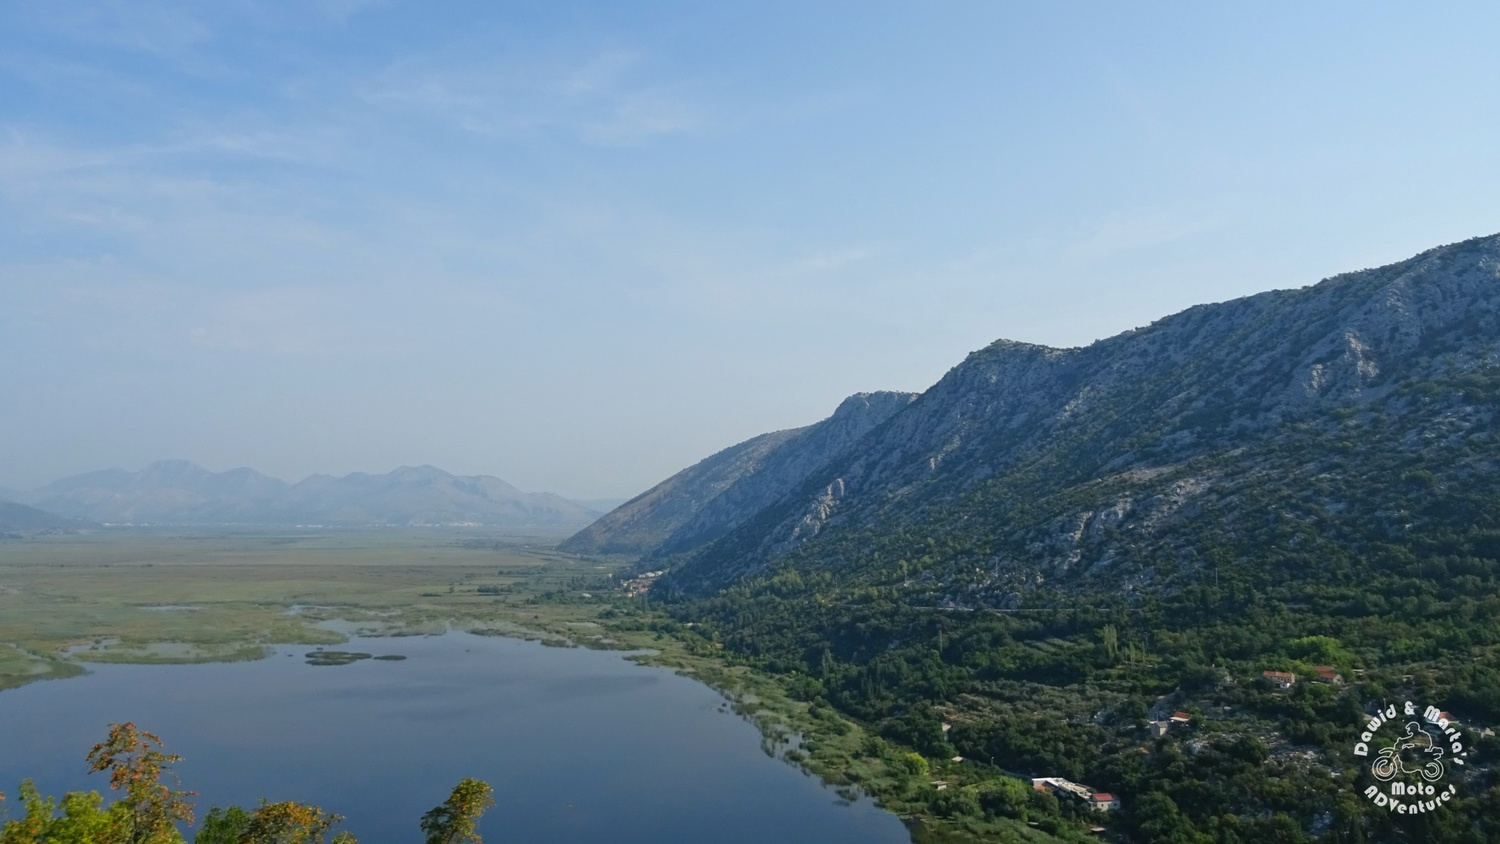 The Kuti Lake seen from the roadbetween Zavala and border between Croatia and Bosnia